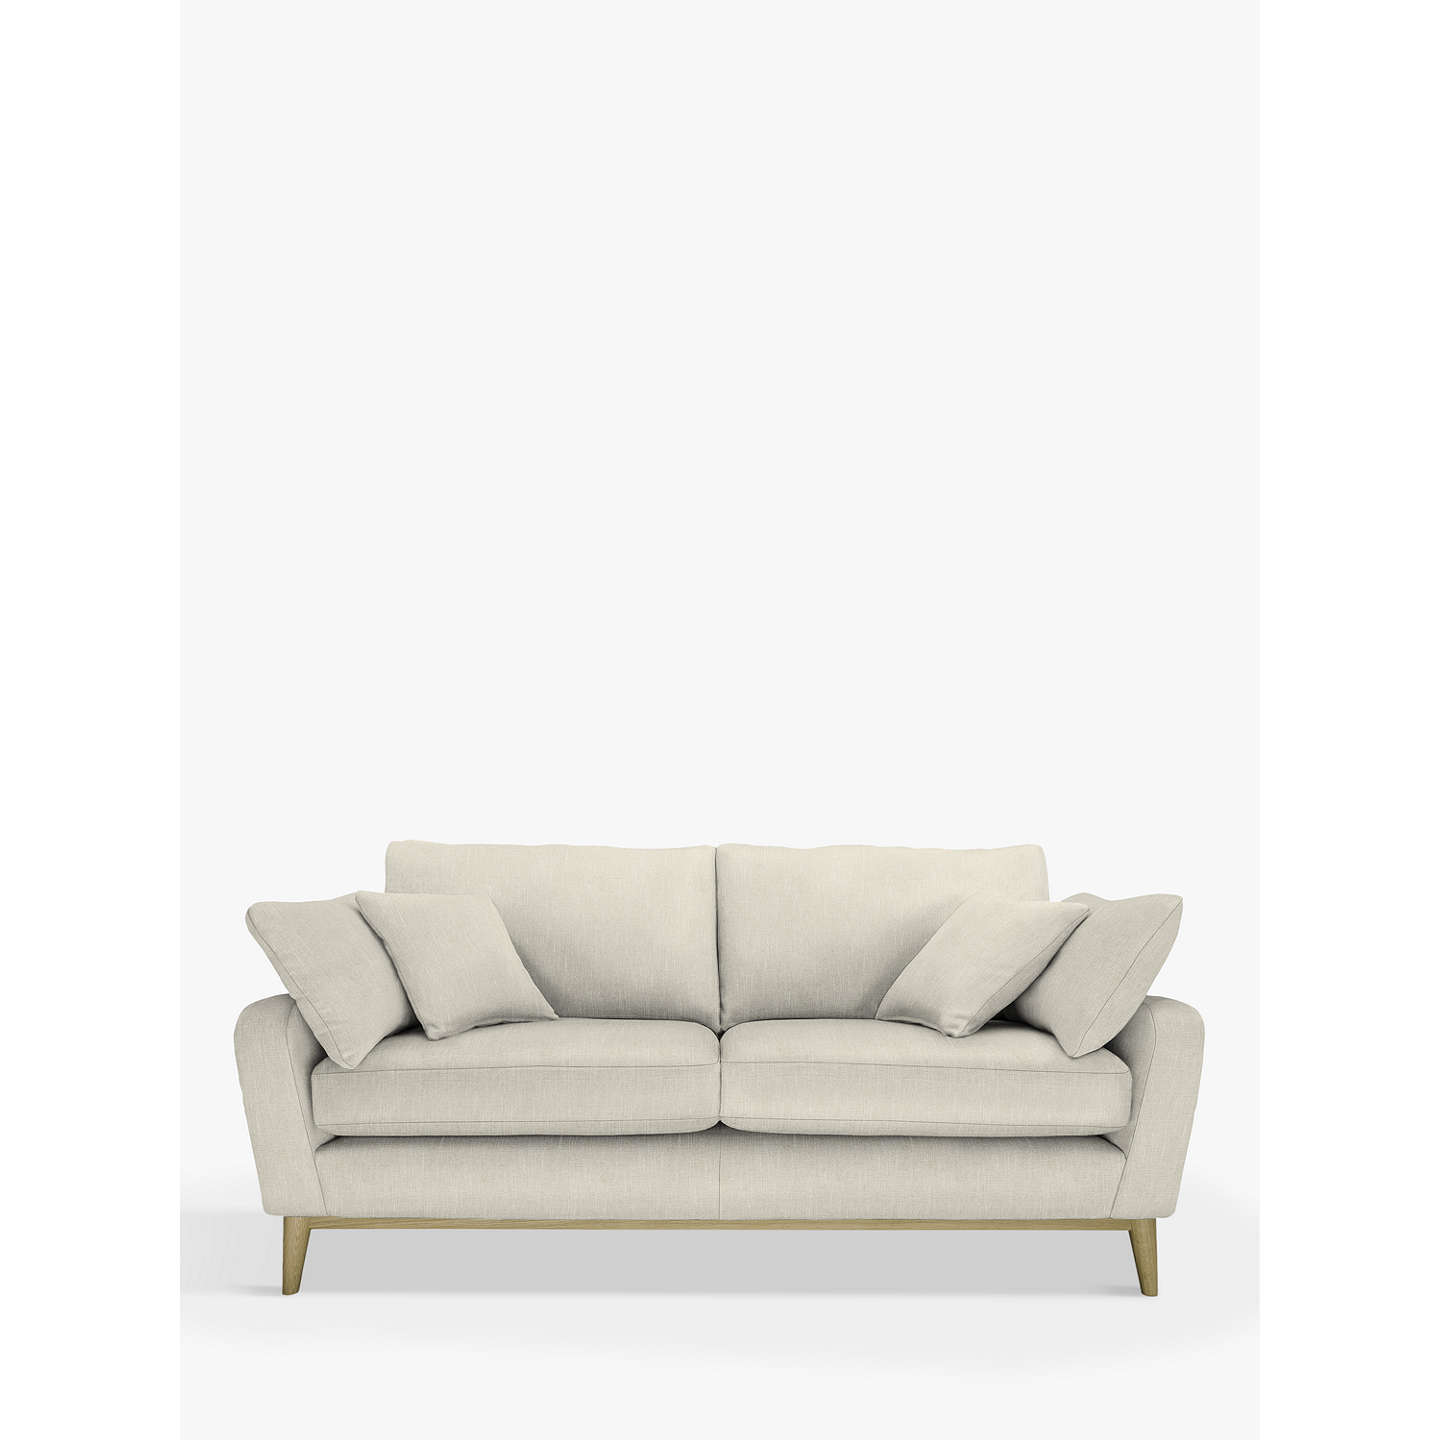 Buyercol for John Lewis Salento 3 Seater Sofa, Vernaldo Driftwood Online at johnlewis.com